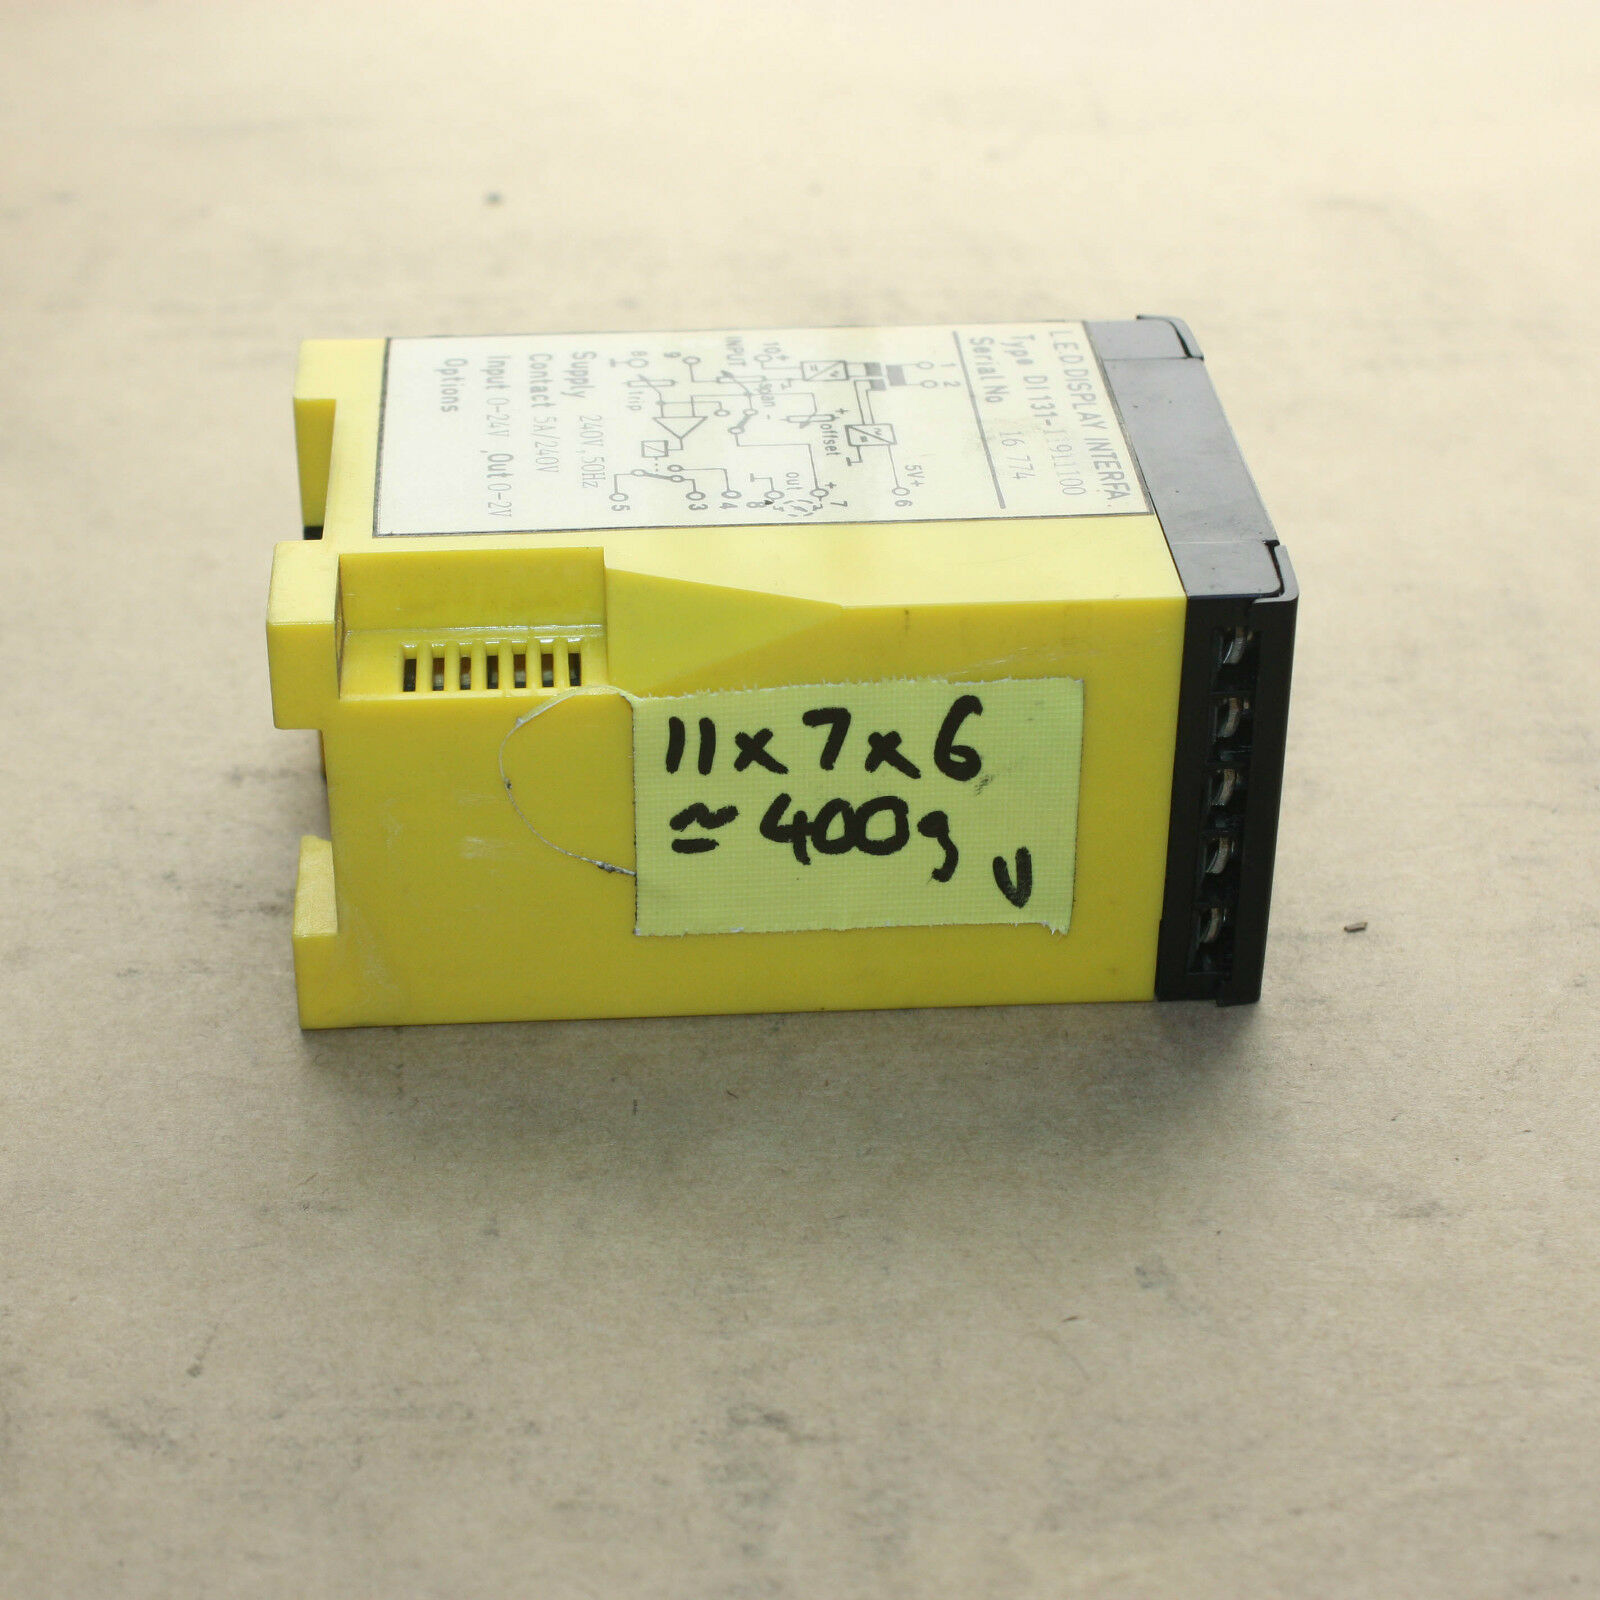 A.P.C.S.  LED display interface Type D1 131-11911100